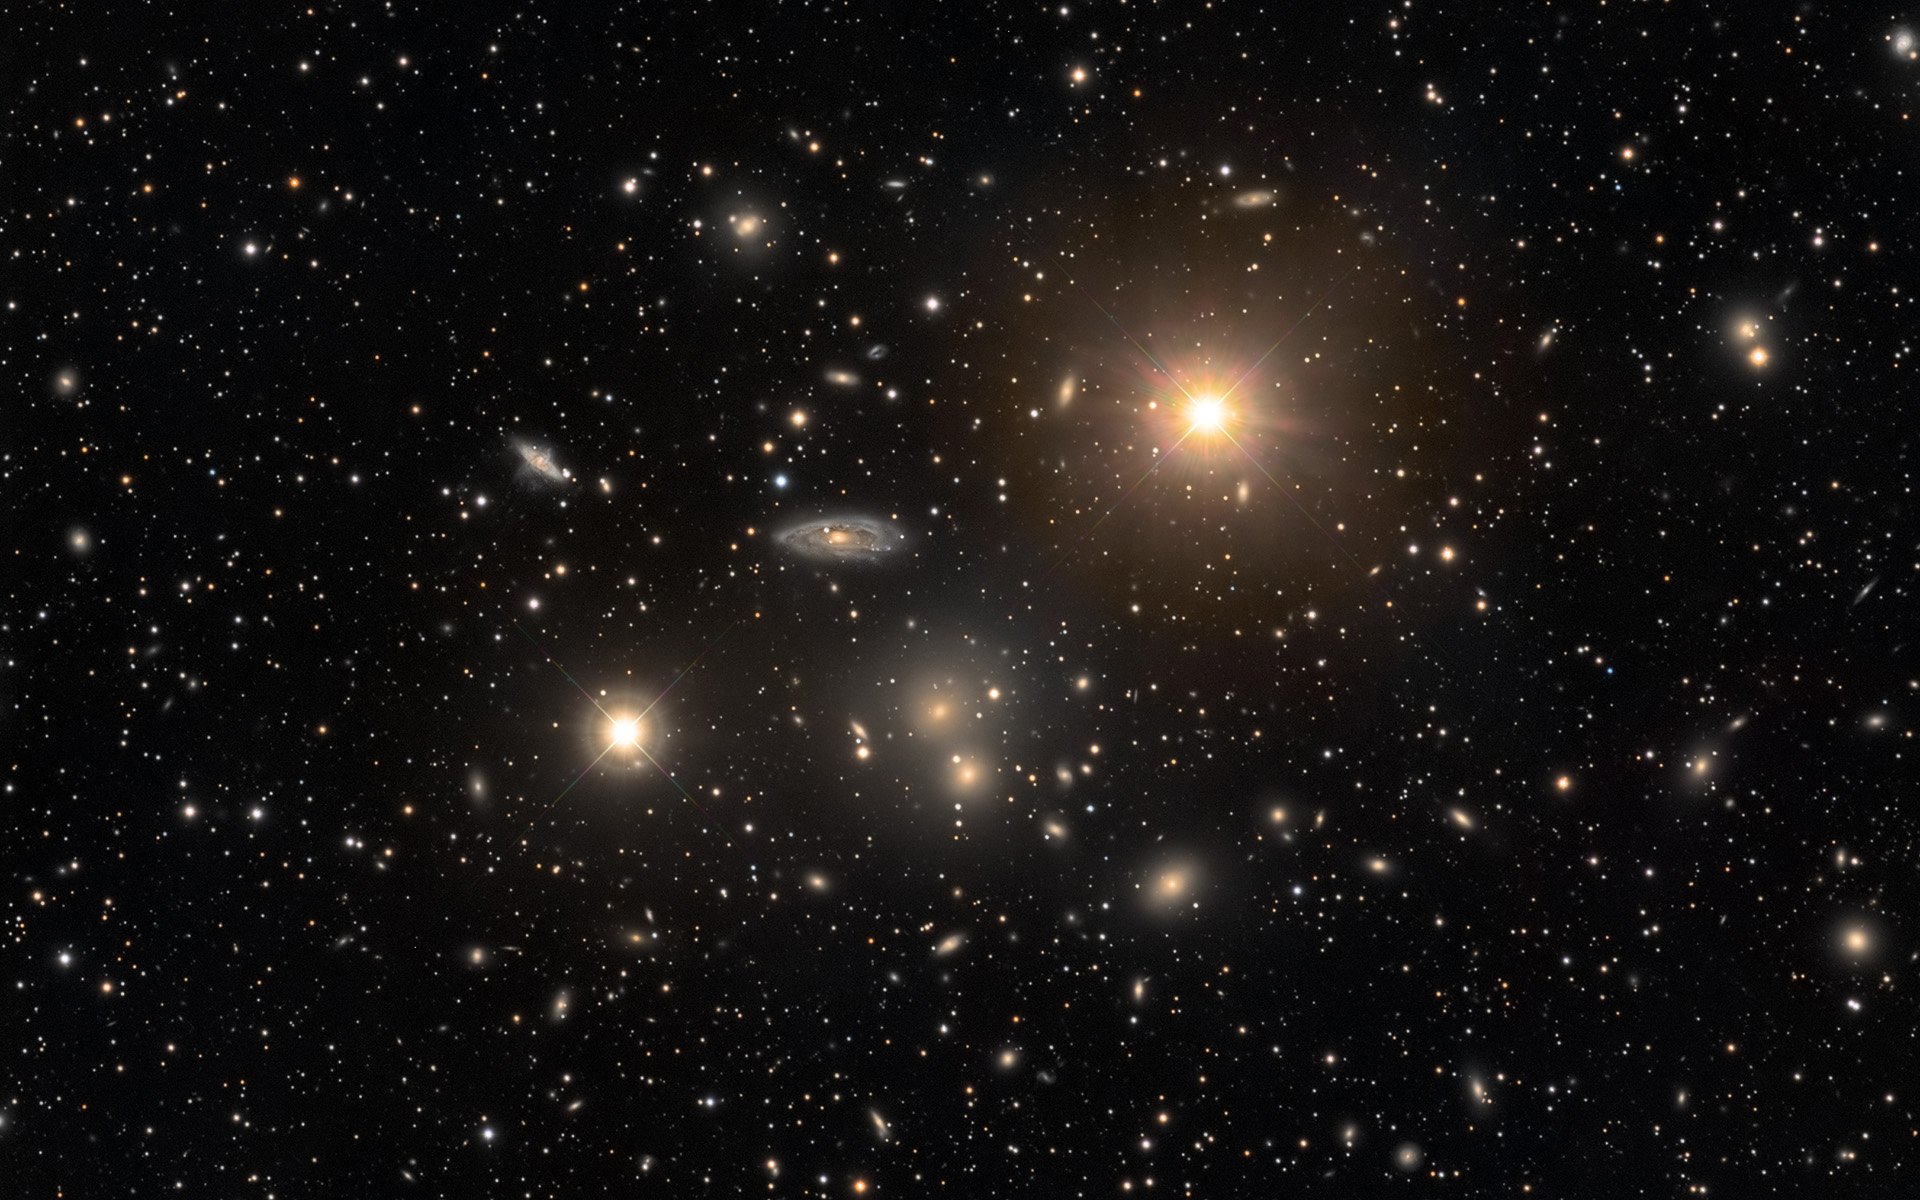 The Hydra Cluster of Galaxies